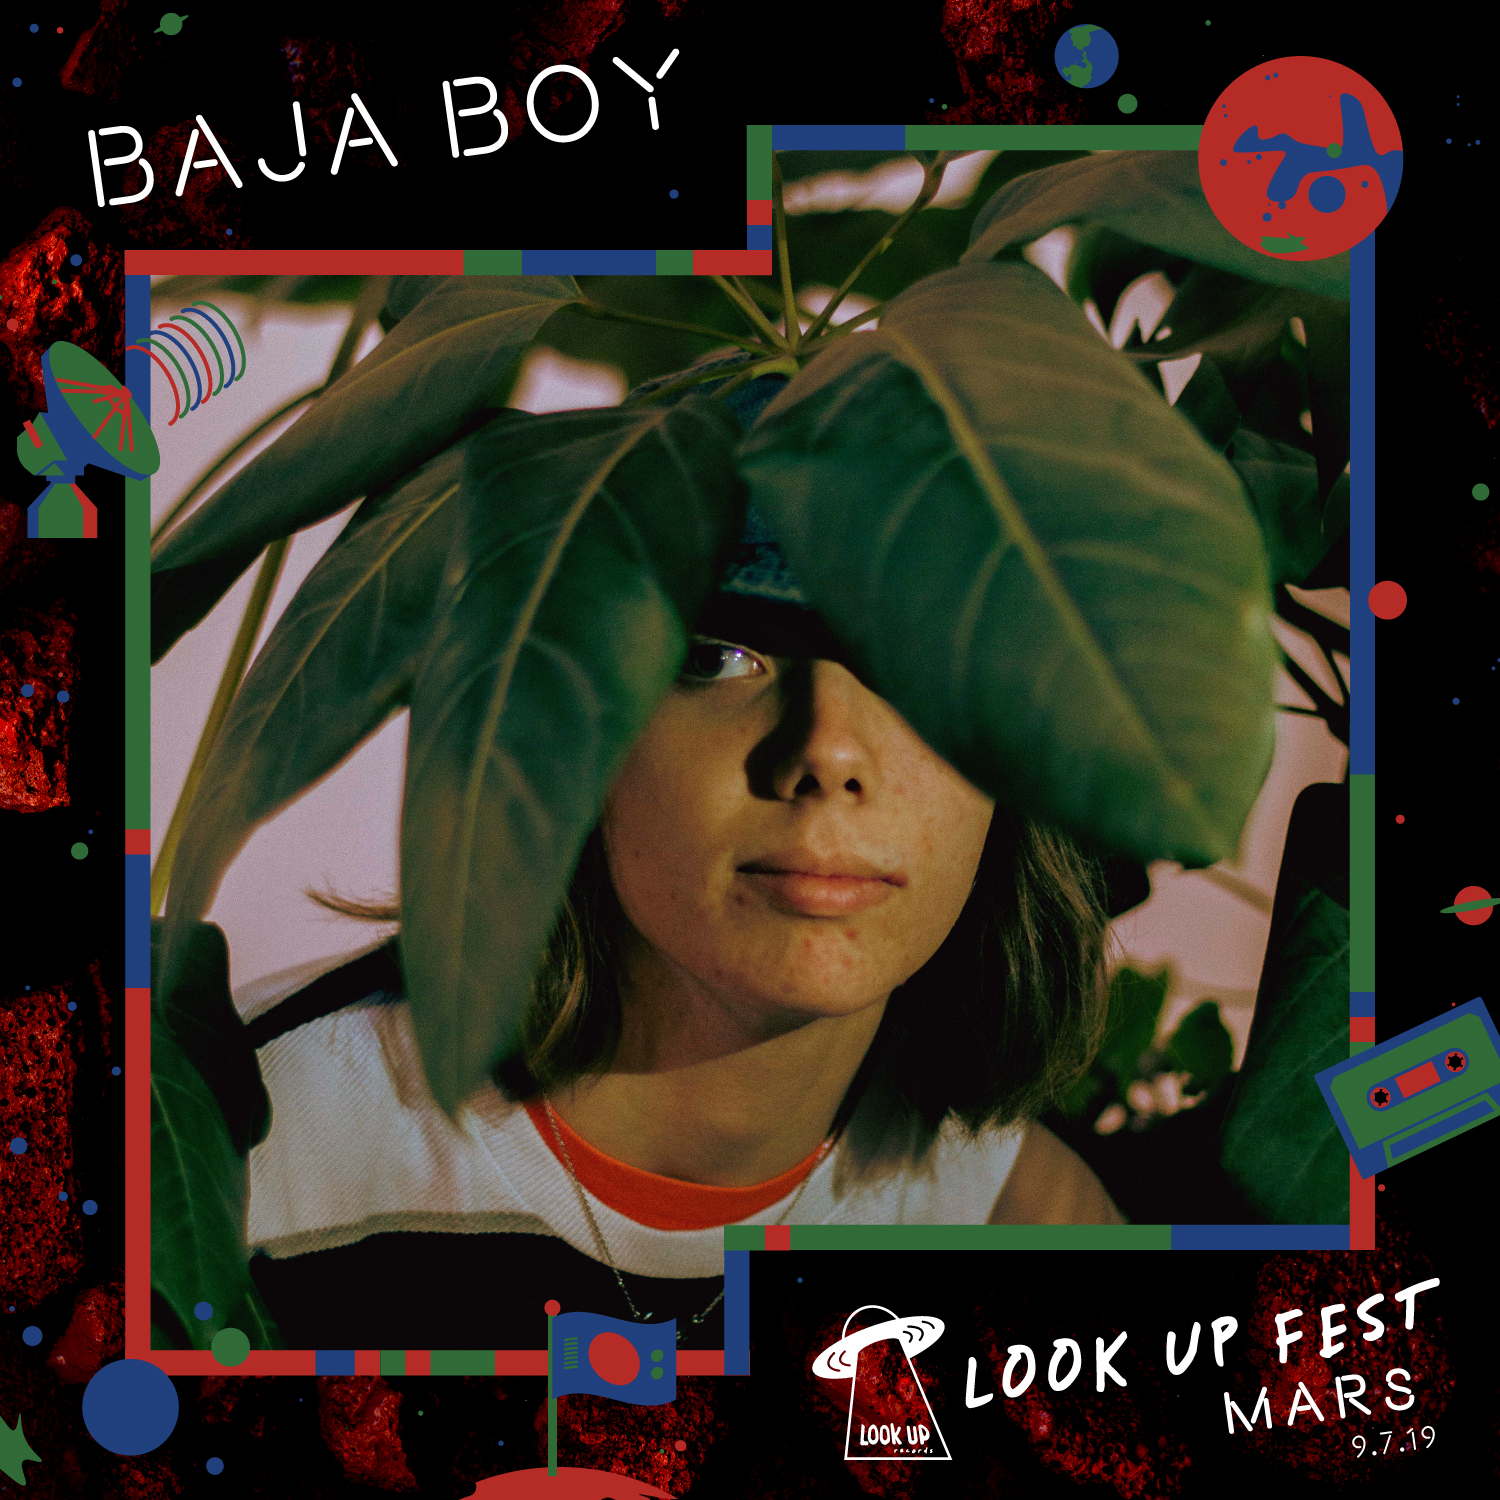 """BAJA BOY - As Baja Boy, 16-year-old Christian Taylor has captured the hearts and souls of Washington's music scene. After eating Taco Bell for two months straight, the name Baja Boy was given to Christian for his affection for the Baja Blast. When he is not eating Crunch Wrap Supremes, Baja Boy writes, produces and records groovy synth packed indie pop that has been wowing crowded basements and DIY venues all over the Pacific Northwest. Baja Boy's dreamy swirling soundscape of music contains lyrics that are personal and relatable to, by all. In March, Baja Boy, did an in studio performance of the songs """"Lonely"""" & """"Tums"""" at the radio station KEXP, they also placed 2nd in the 2019 Museum of Pop Culture's Soundoff Competition. Baja Boy's song """"Lonely"""" has over 100,000 streams."""